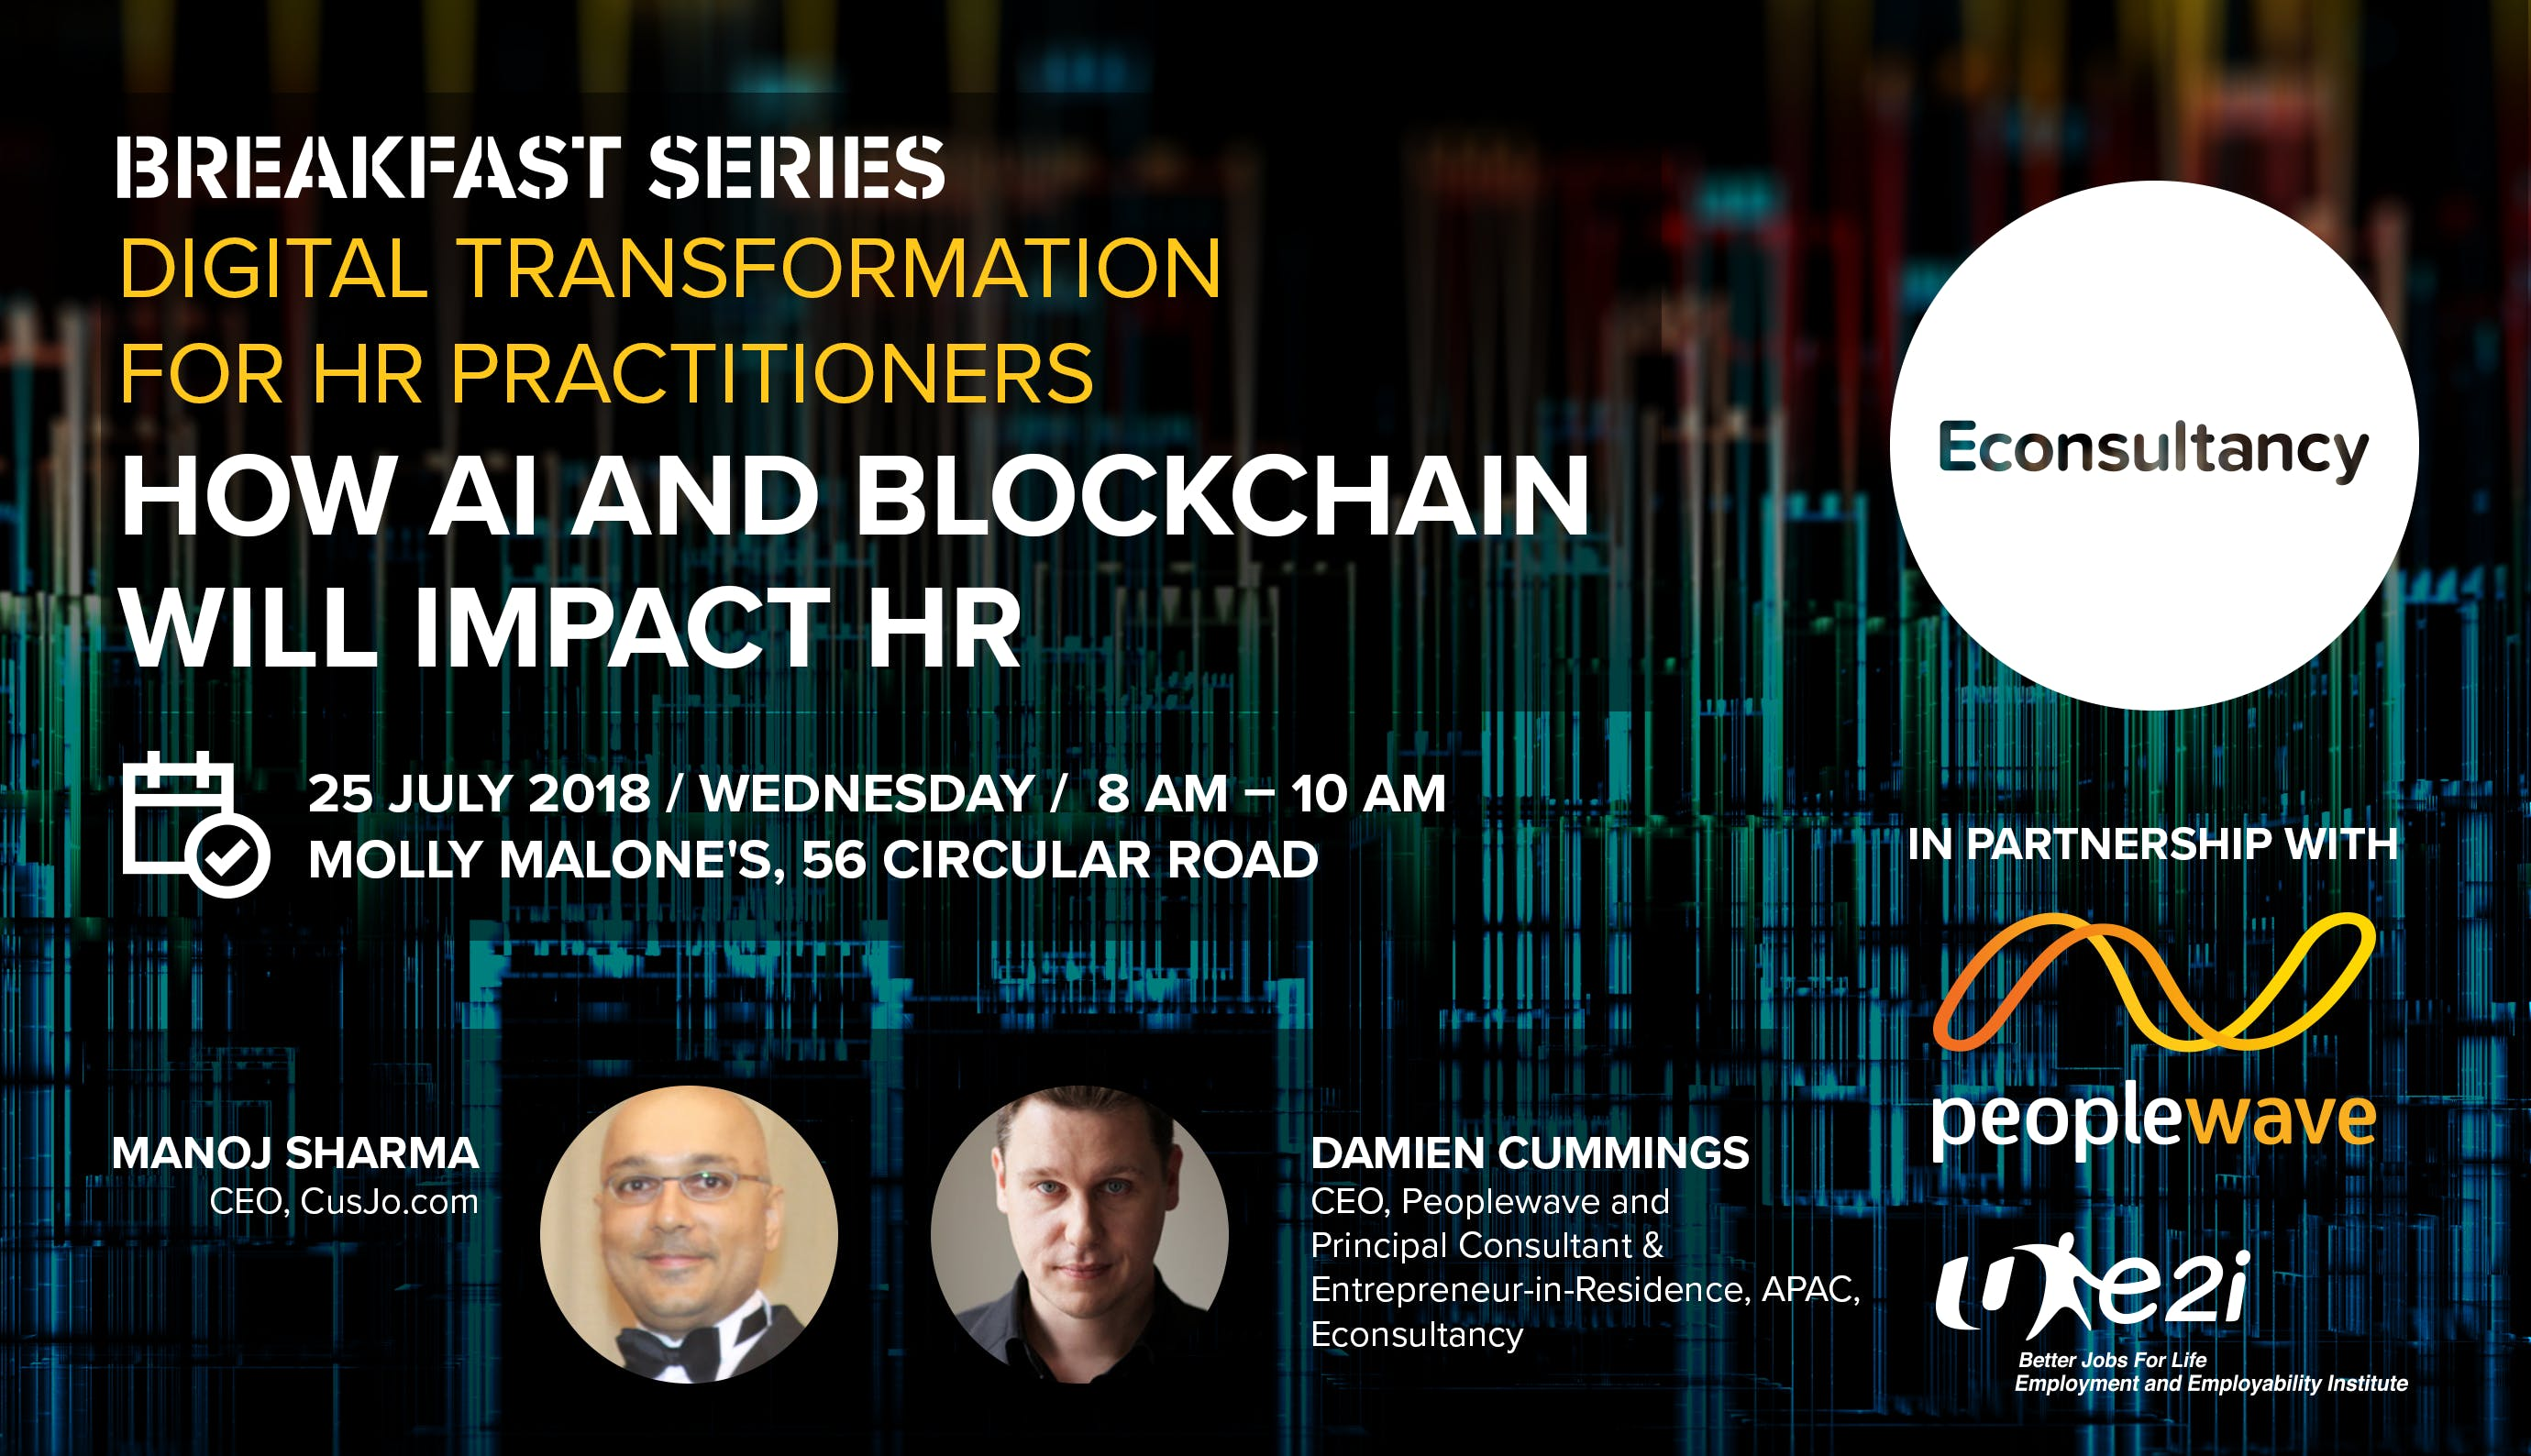 Breakfast Series Digital Transformation for HR Practitioners - How AI and Blockchain will impact HR